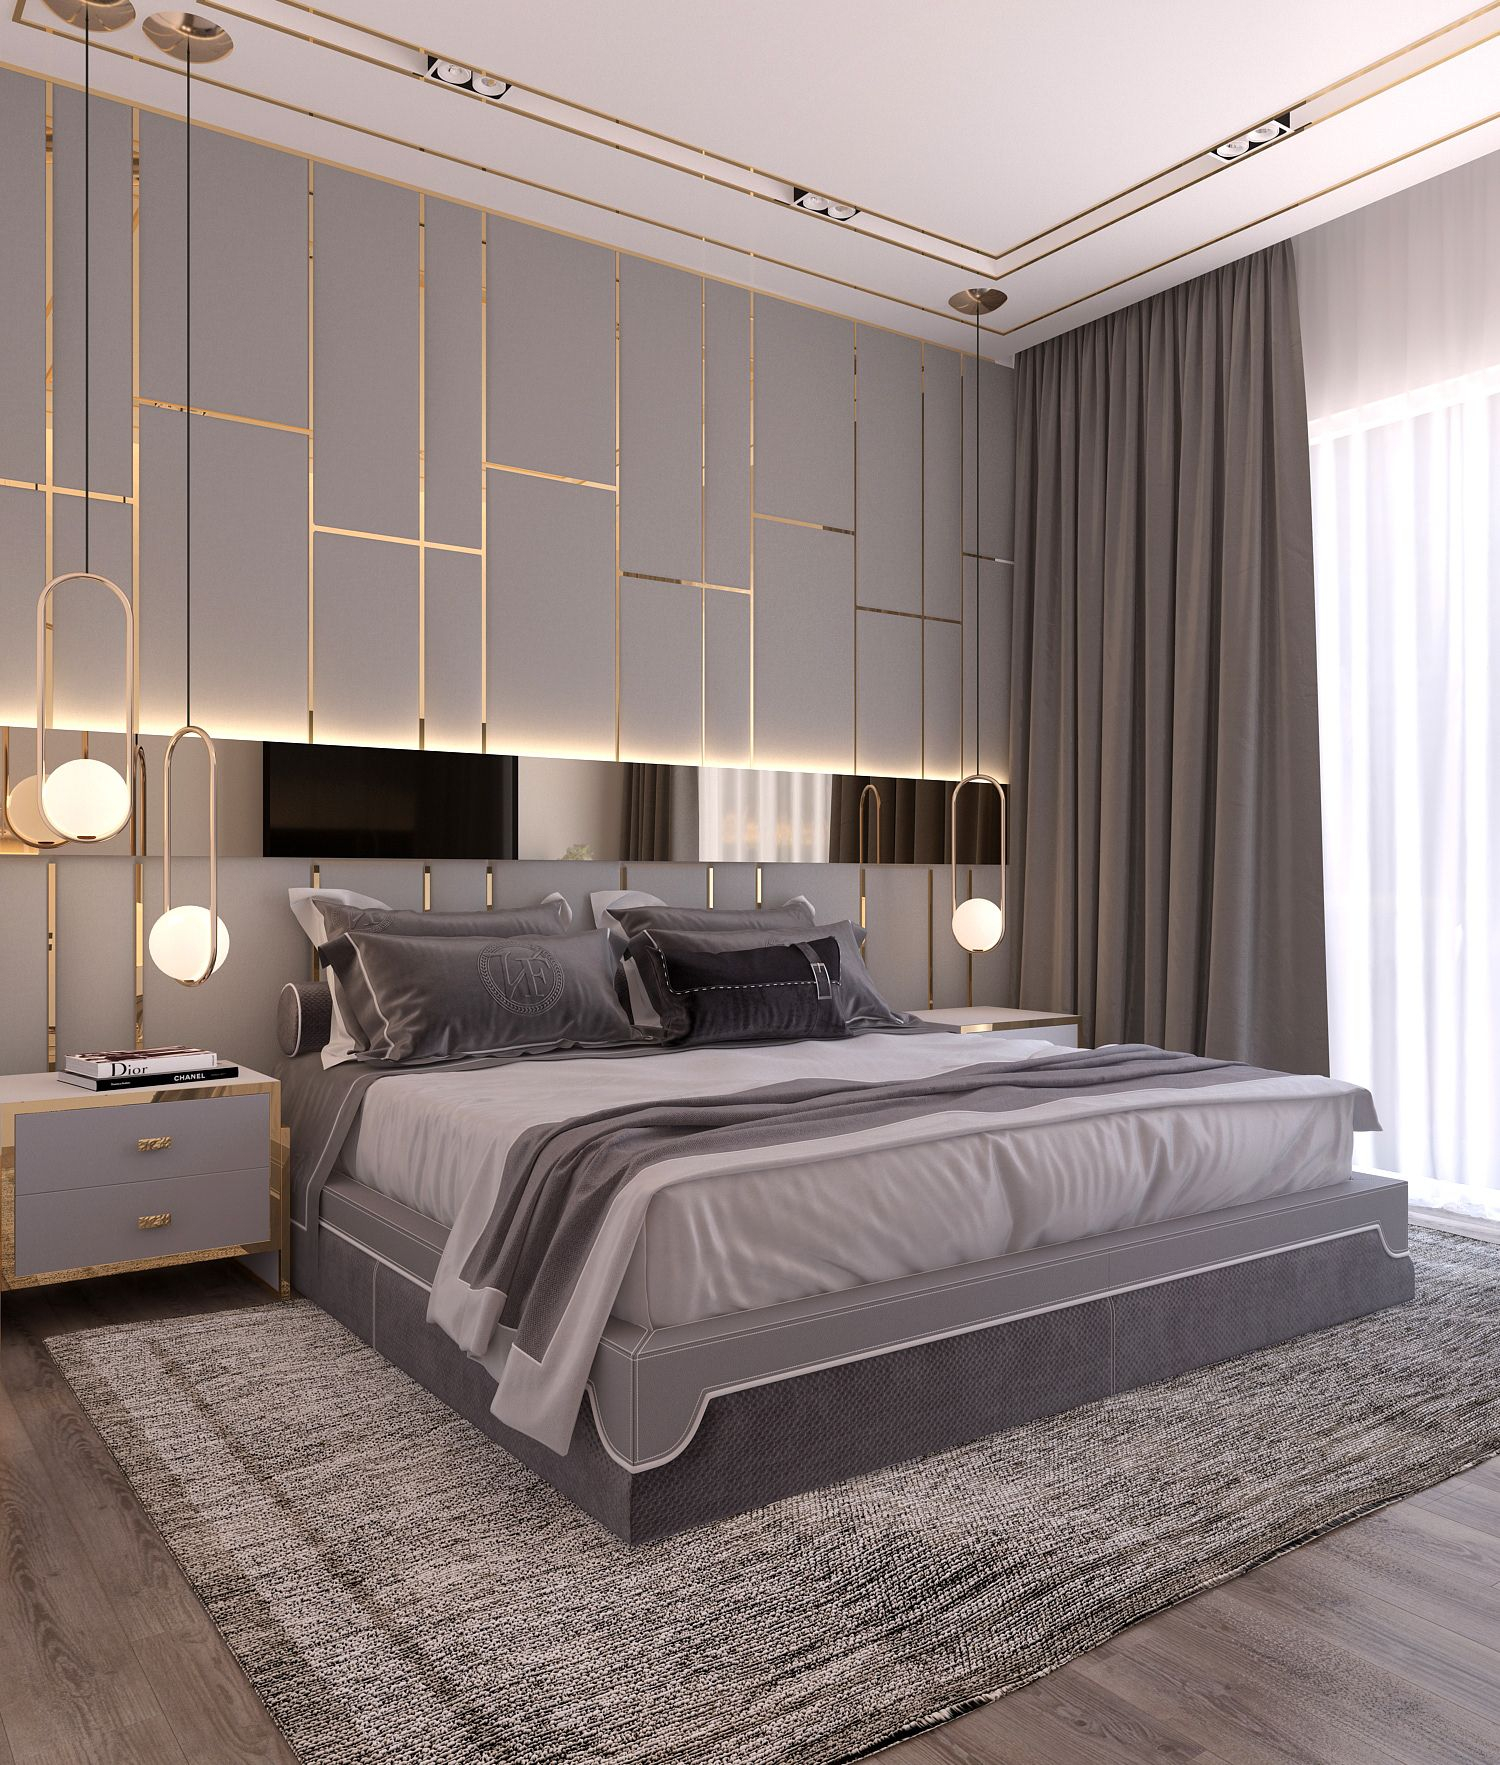 Modern Style Bedroom Dubai Project On Behance Bedrooms In intended for Modern Design Bedroom